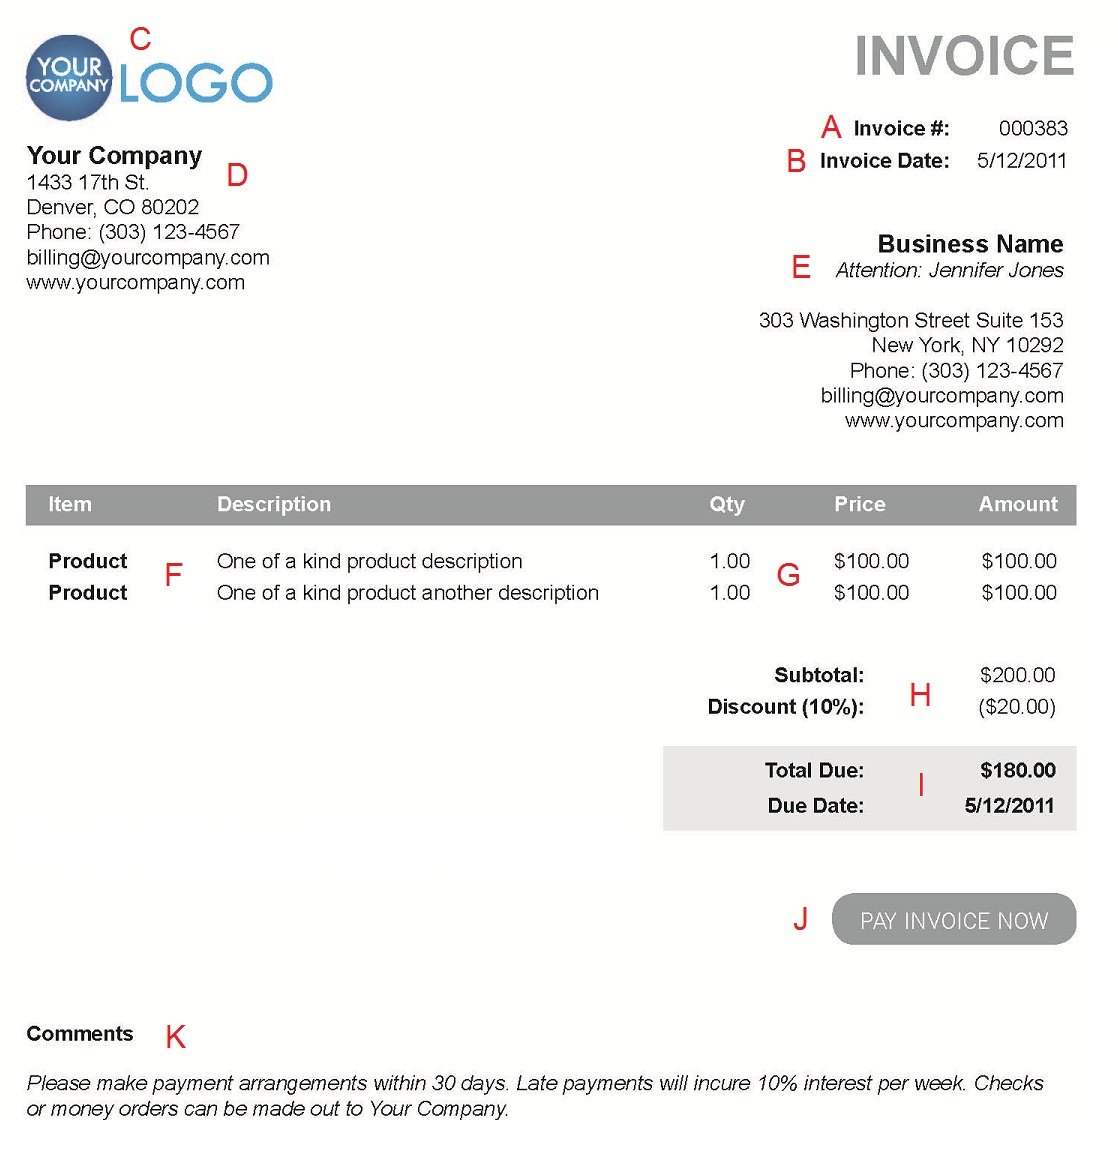 Usdgus  Outstanding The  Different Sections Of An Electronic Payment Invoice With Glamorous A  With Amusing How To Print An Invoice Also Sample Rent Invoice In Addition Invoice Solutions And Invoice Dispute As Well As Pay An Invoice Additionally Bmw X Invoice Price From Paysimplecom With Usdgus  Glamorous The  Different Sections Of An Electronic Payment Invoice With Amusing A  And Outstanding How To Print An Invoice Also Sample Rent Invoice In Addition Invoice Solutions From Paysimplecom